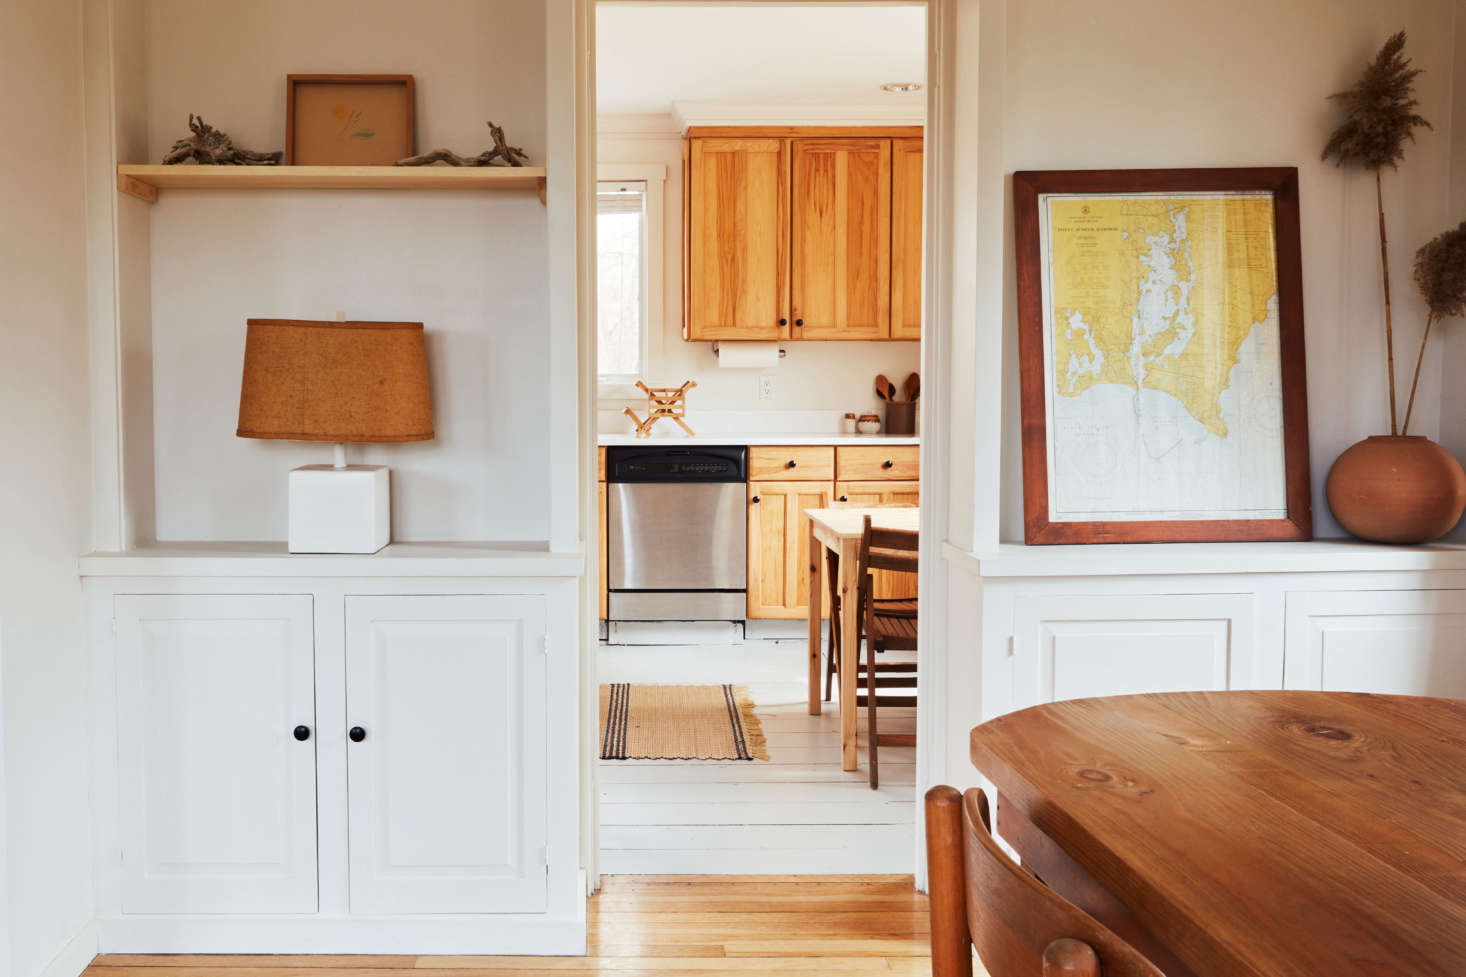 Built-ins divide living room from kitchen. On the shelves, says Sean: &#8